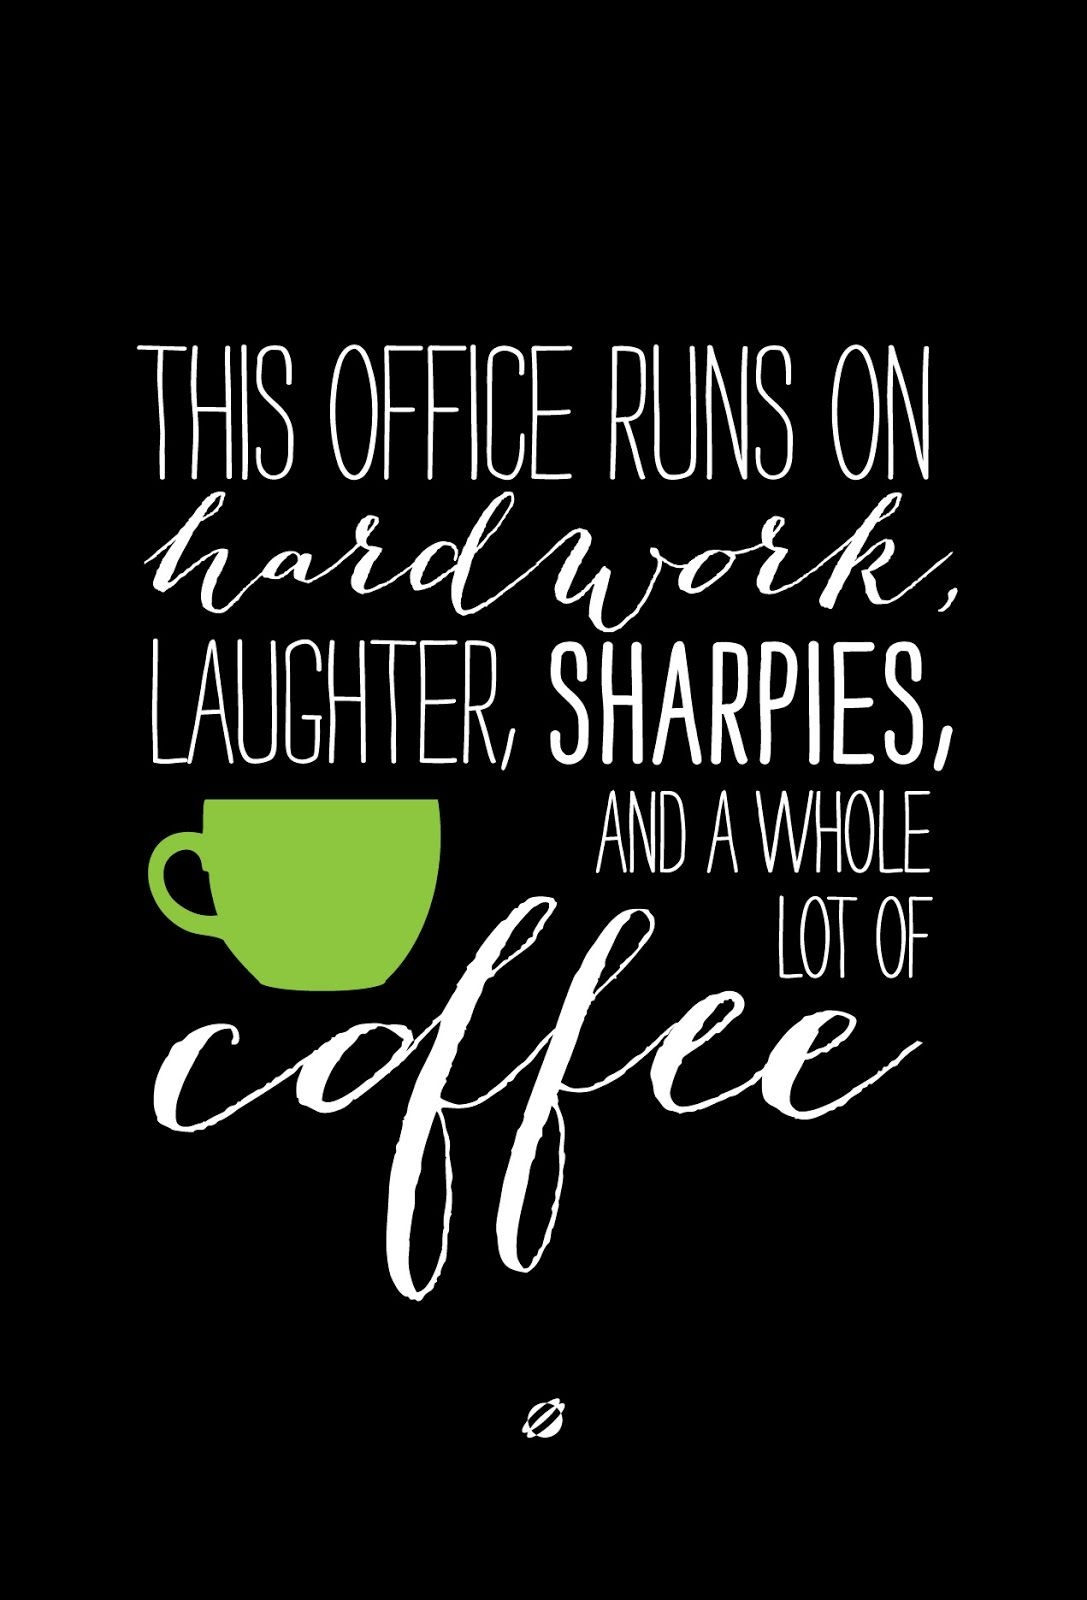 Lostbumblebee What Does Your Studio Office Run On Office Quotes Work Quotes Quotes